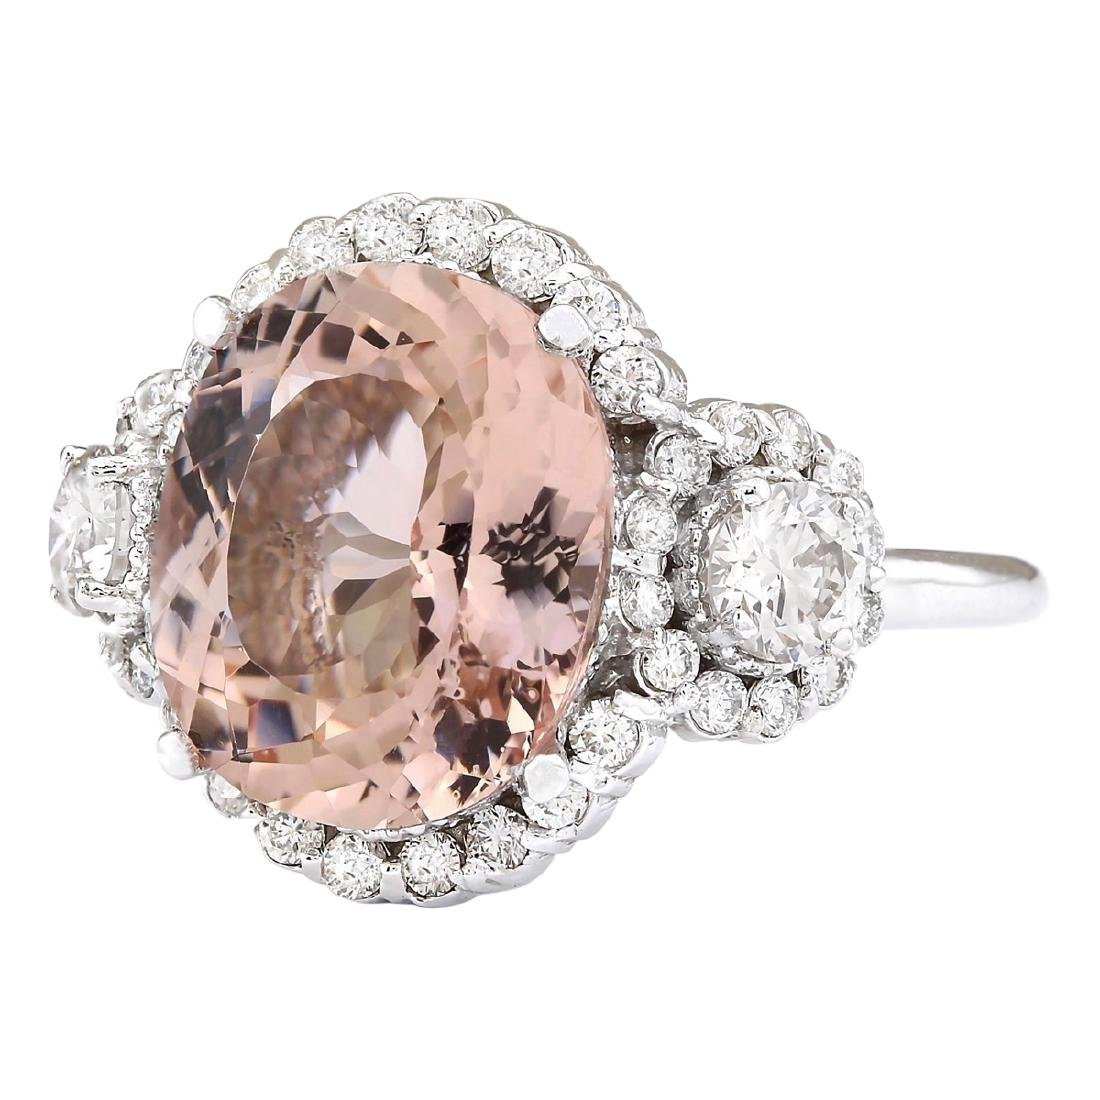 7.21 CTW Natural Morganite And Diamond Ring In 18K - 2